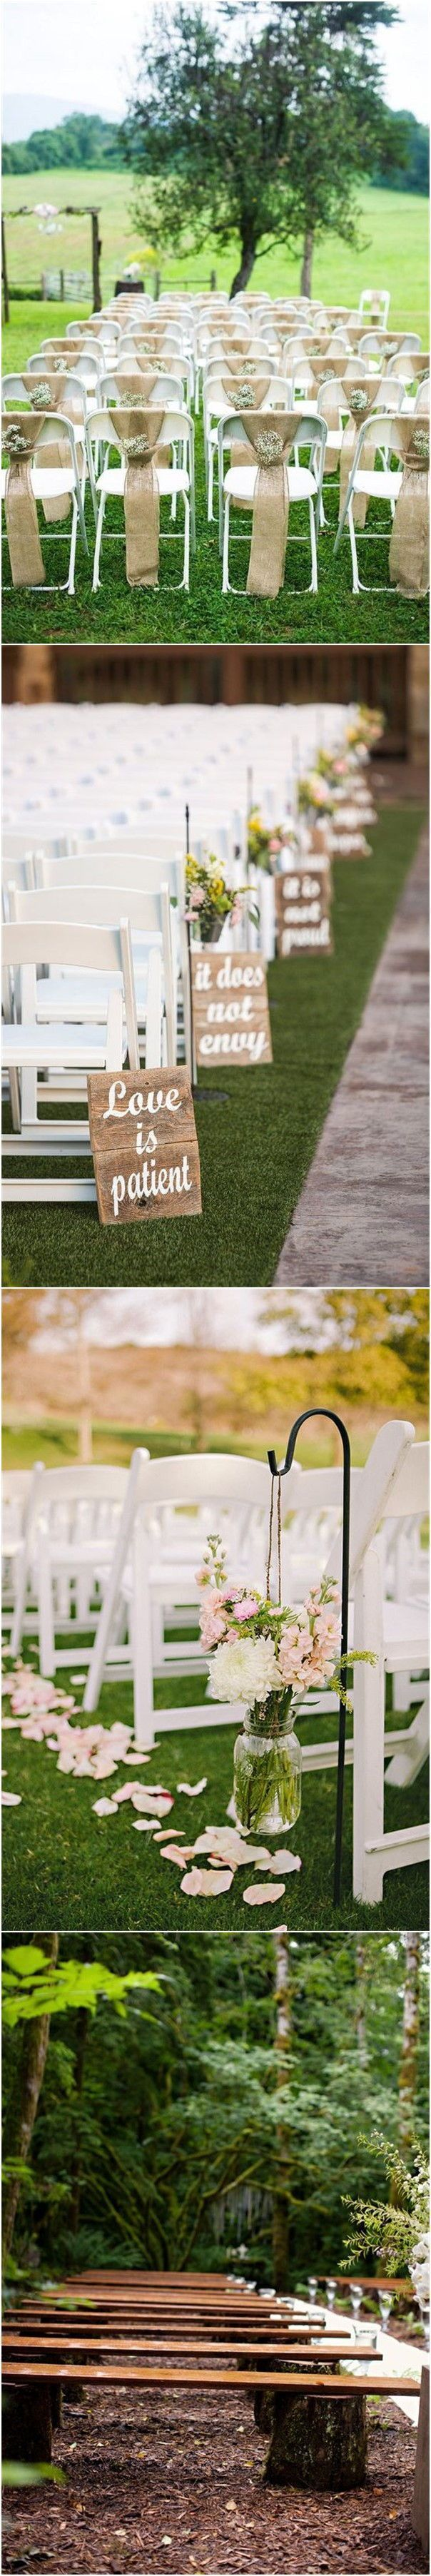 10 Rustic Garden Wedding Ideas Most Awesome as well as Beautiful